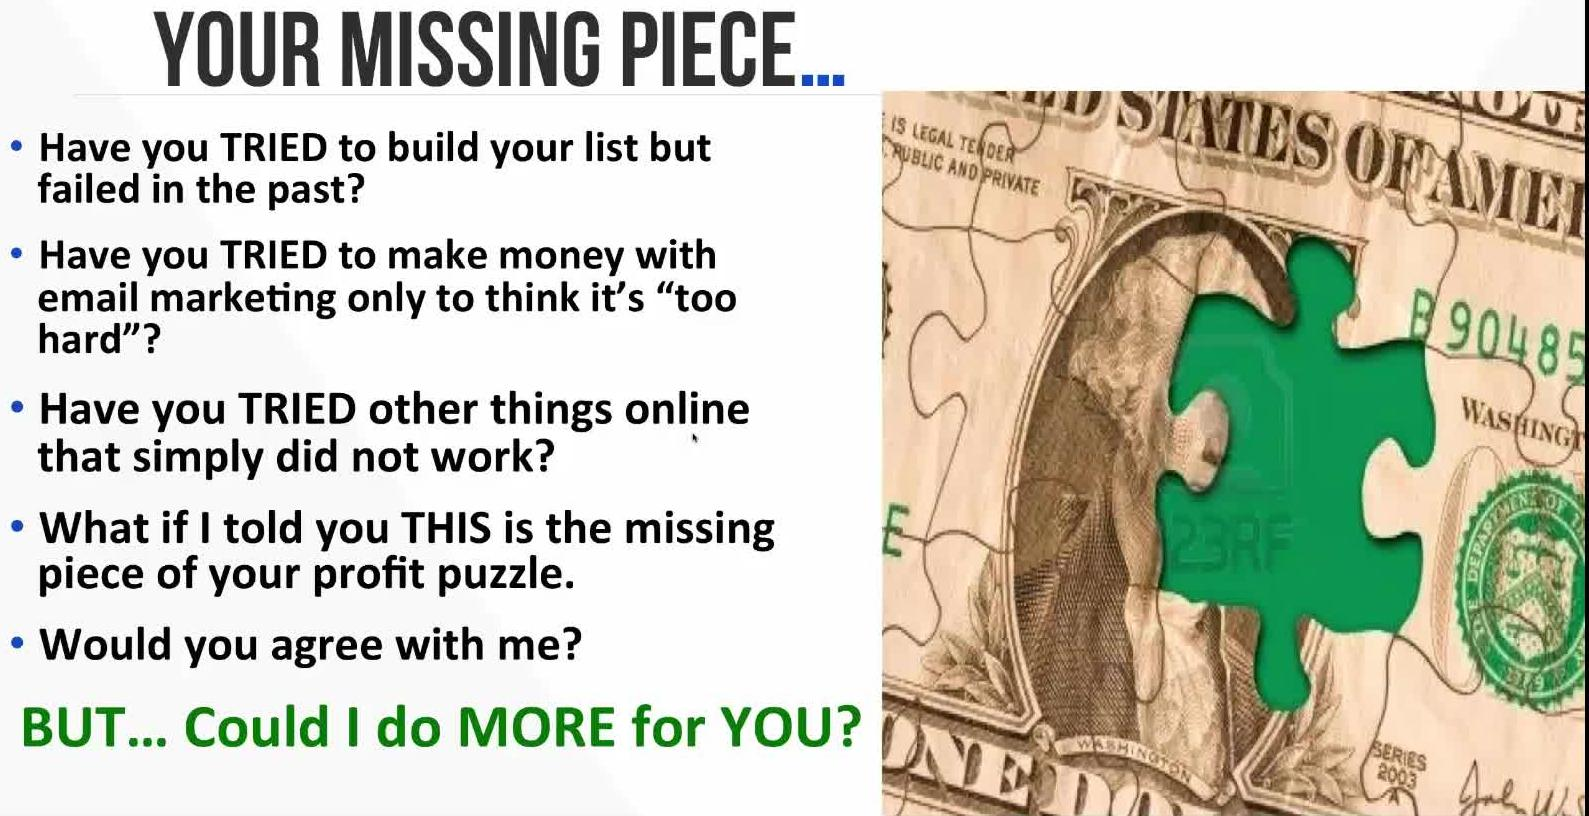 Your Missing Piece